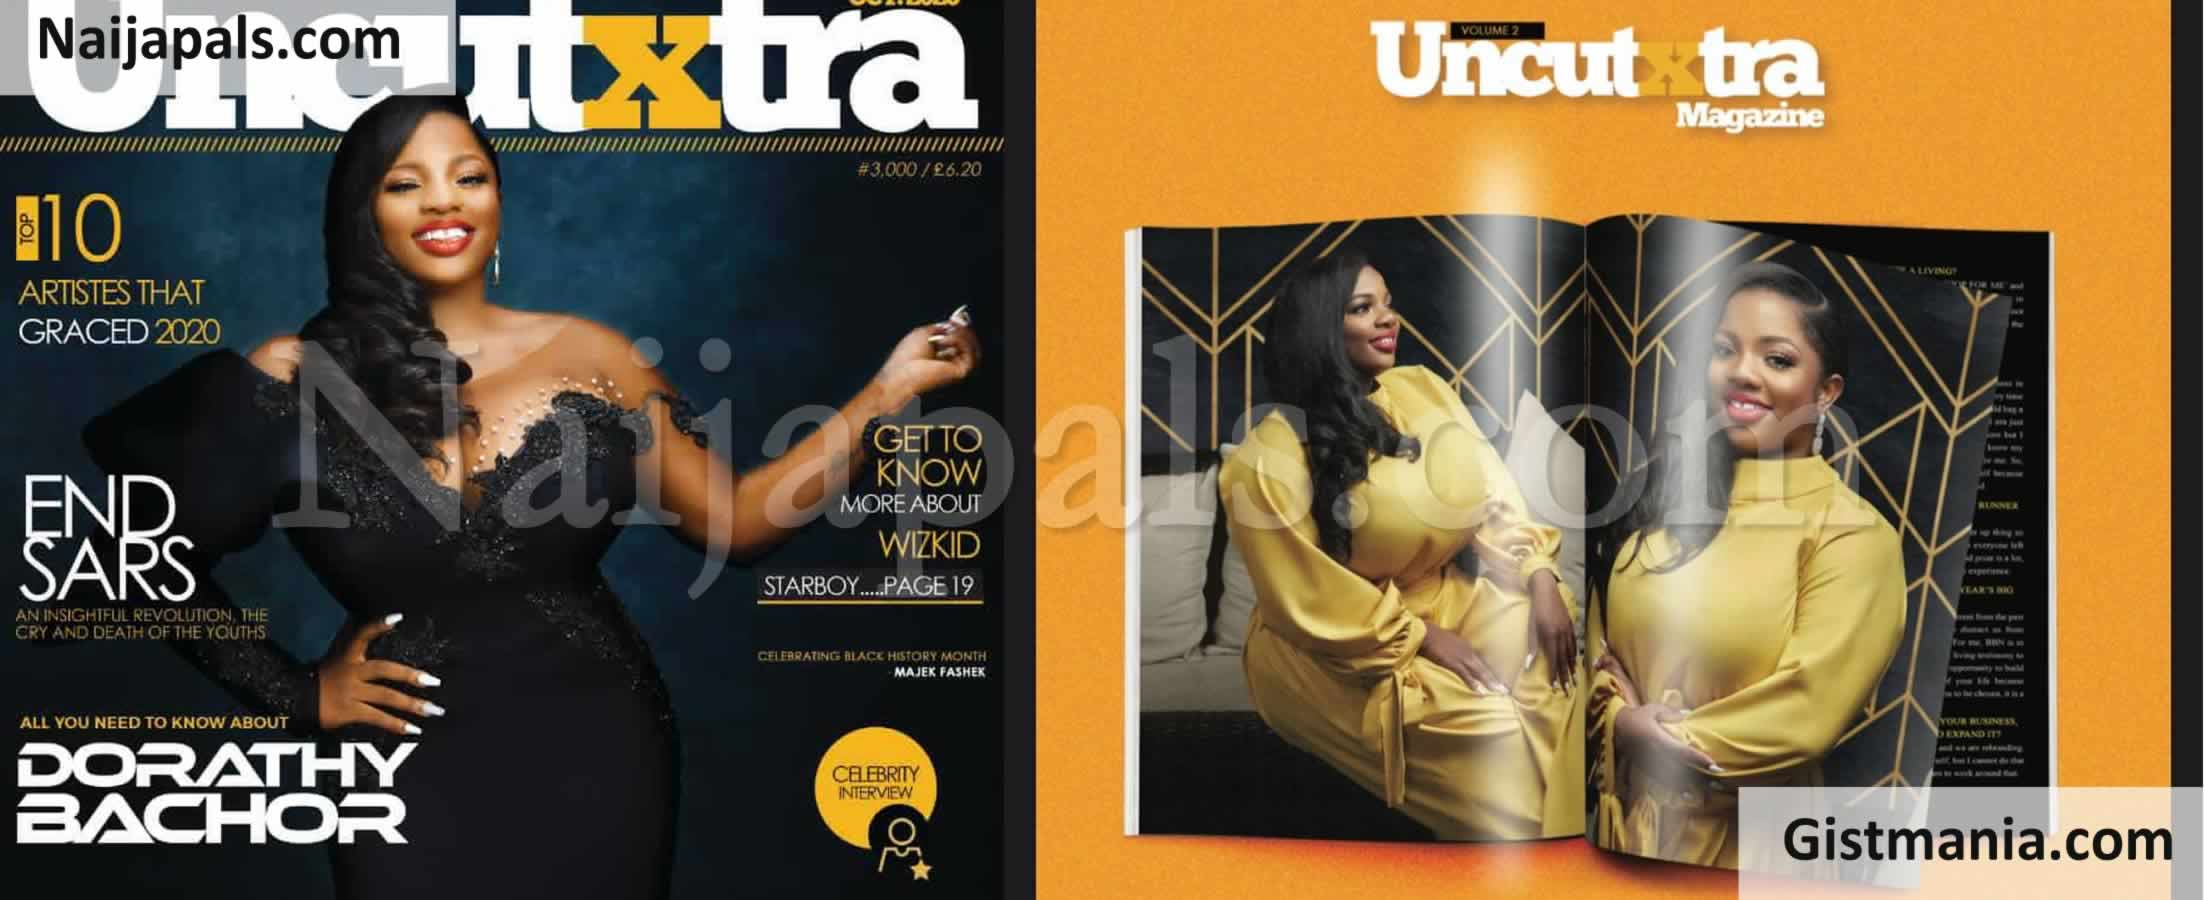 <img alt='.' class='lazyload' data-src='https://img.gistmania.com/emot/photo.png' /> <b>BBNaija 1st Runner-Up, Dorathy Bachor Graces Front Page Of Nigerian Magazine, Uncutxtra</b> (Photos)